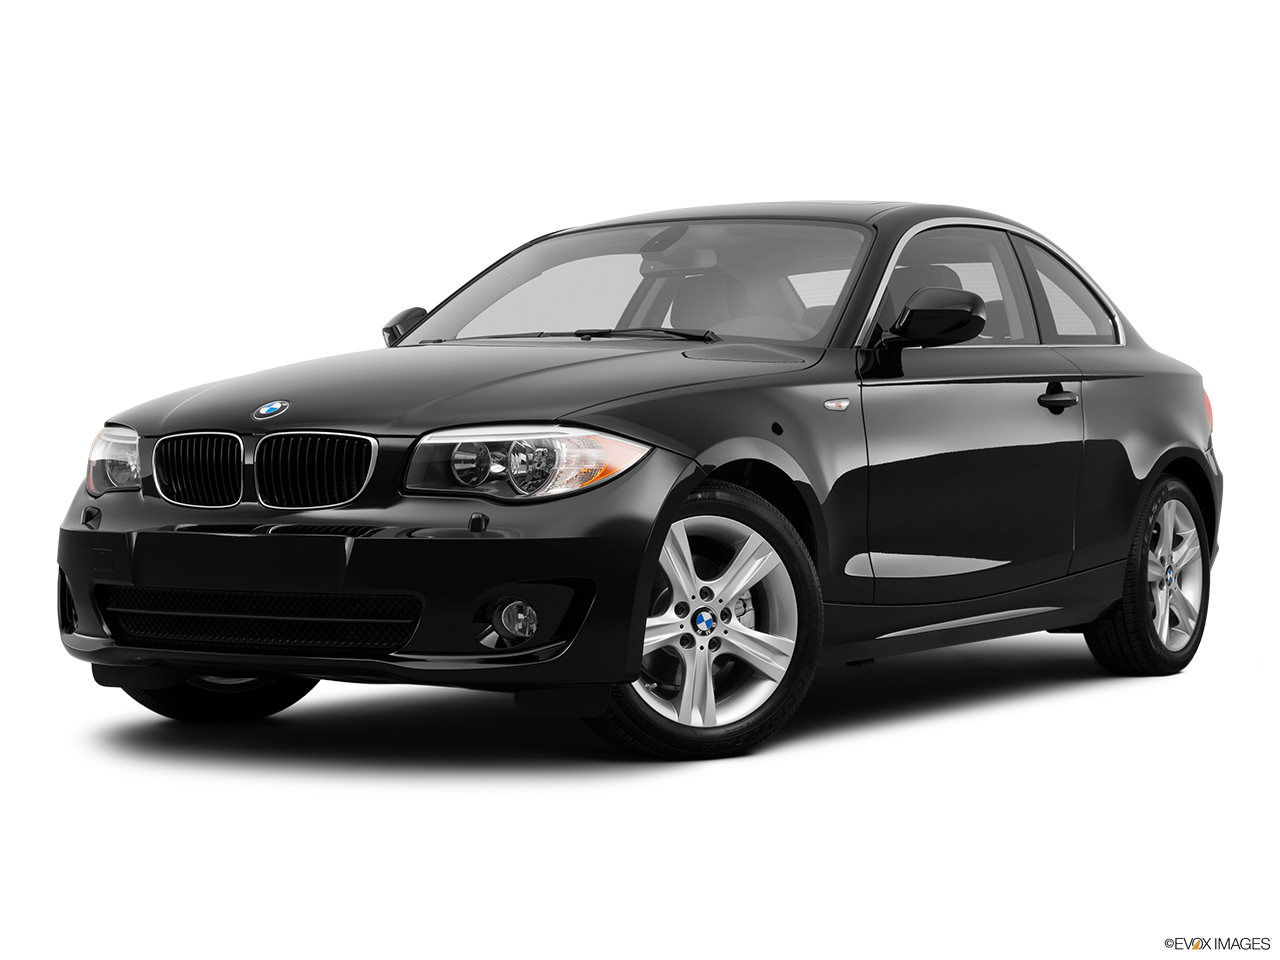 A Buyers Guide To The BMW Series YourMechanic Advice - 2012 bmw 128i coupe